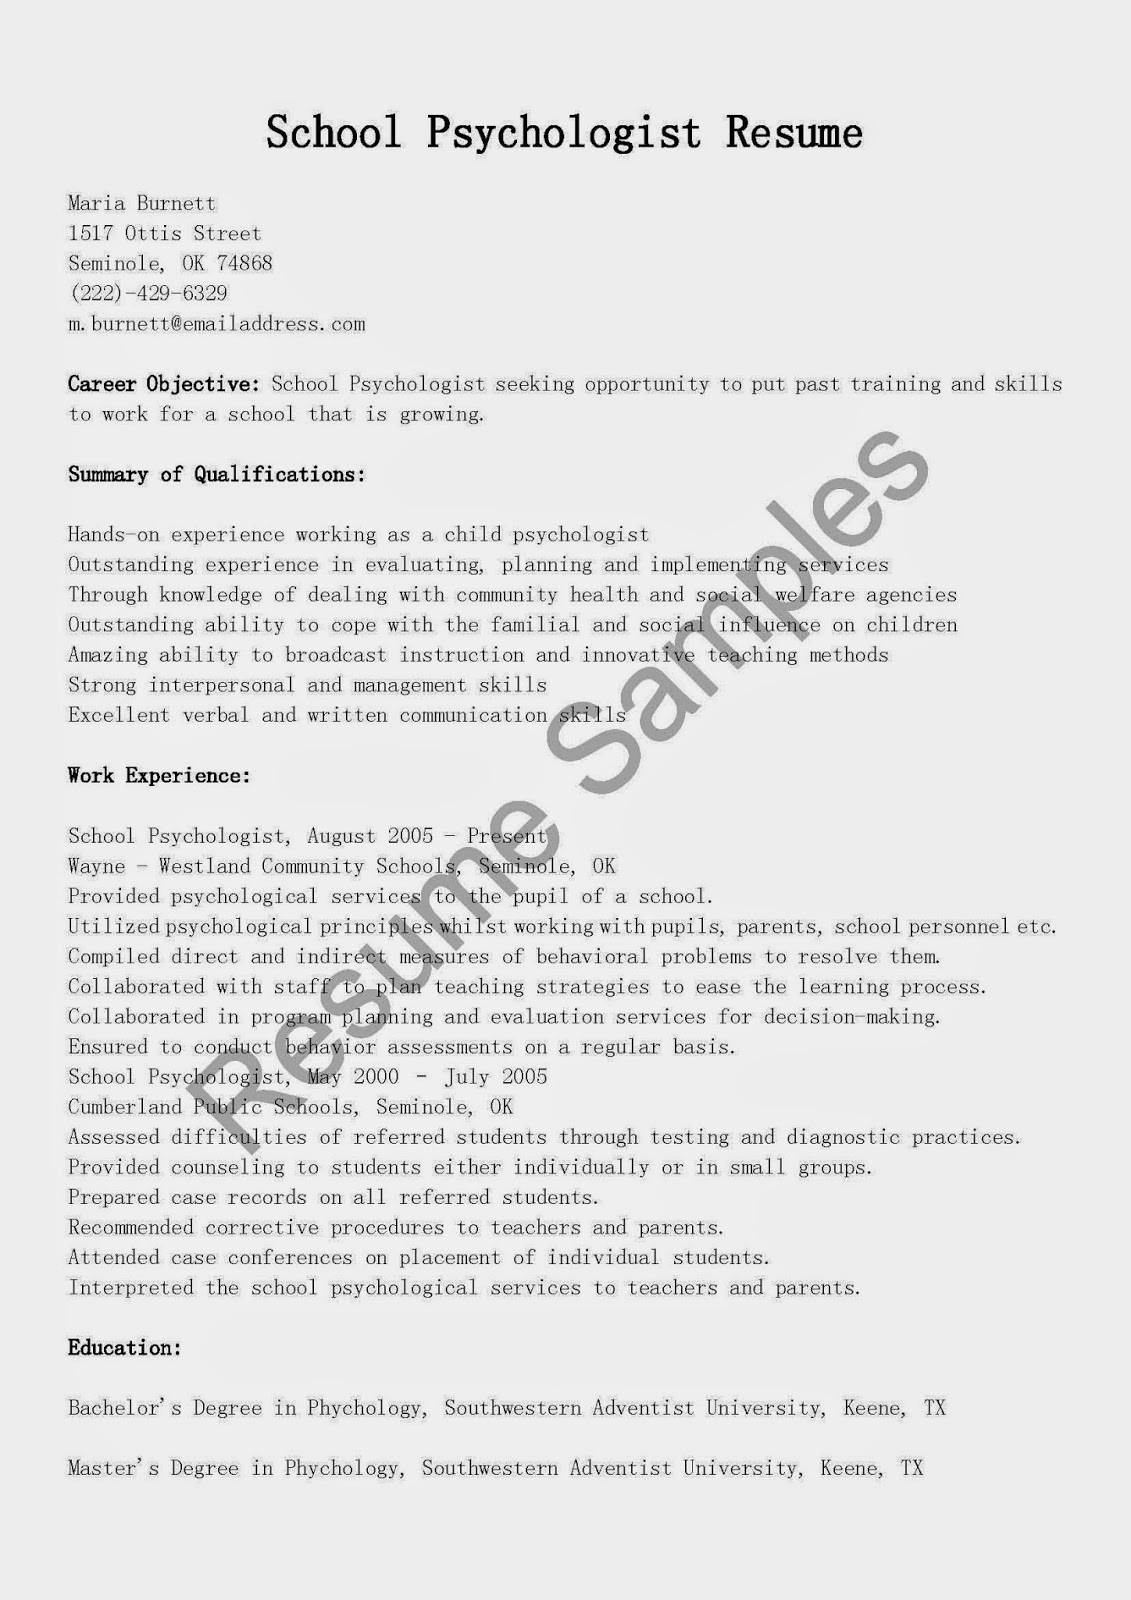 resume samples  school psychologist resume sample